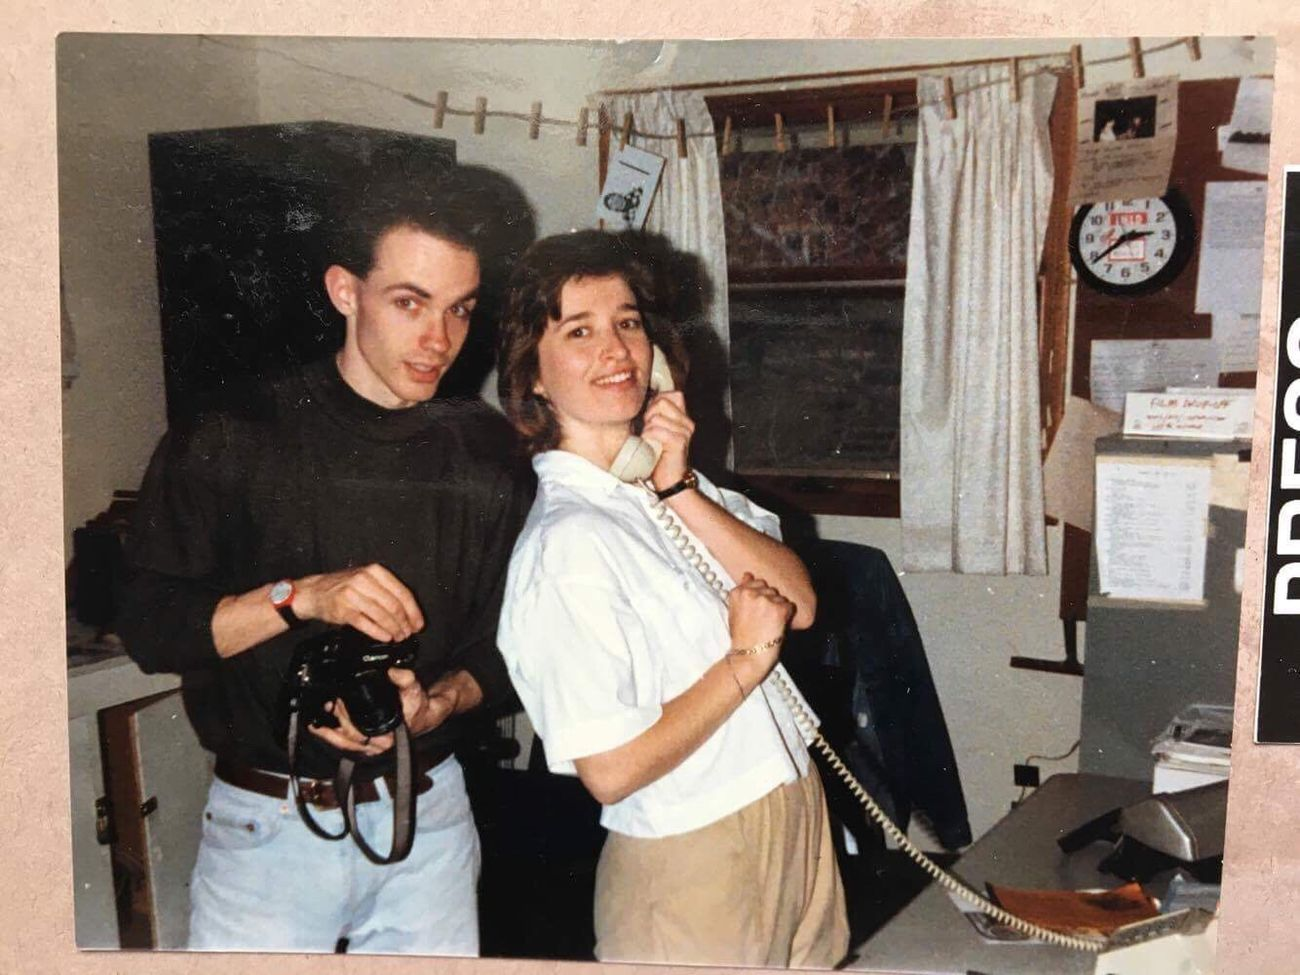 #Tbt circa 1989. My colleague (and possibly boss at the time?) Bev Horne and I hard at work in the photo department at the Northern Star campus newspaper in DeKalb, IL. One of the best jobs I ever had. Two People Adults Only Togetherness Archival Men Young Adult Adult Young Women People Day Shootermag Photojournalism News Newspaper Reportage Photography Film Student